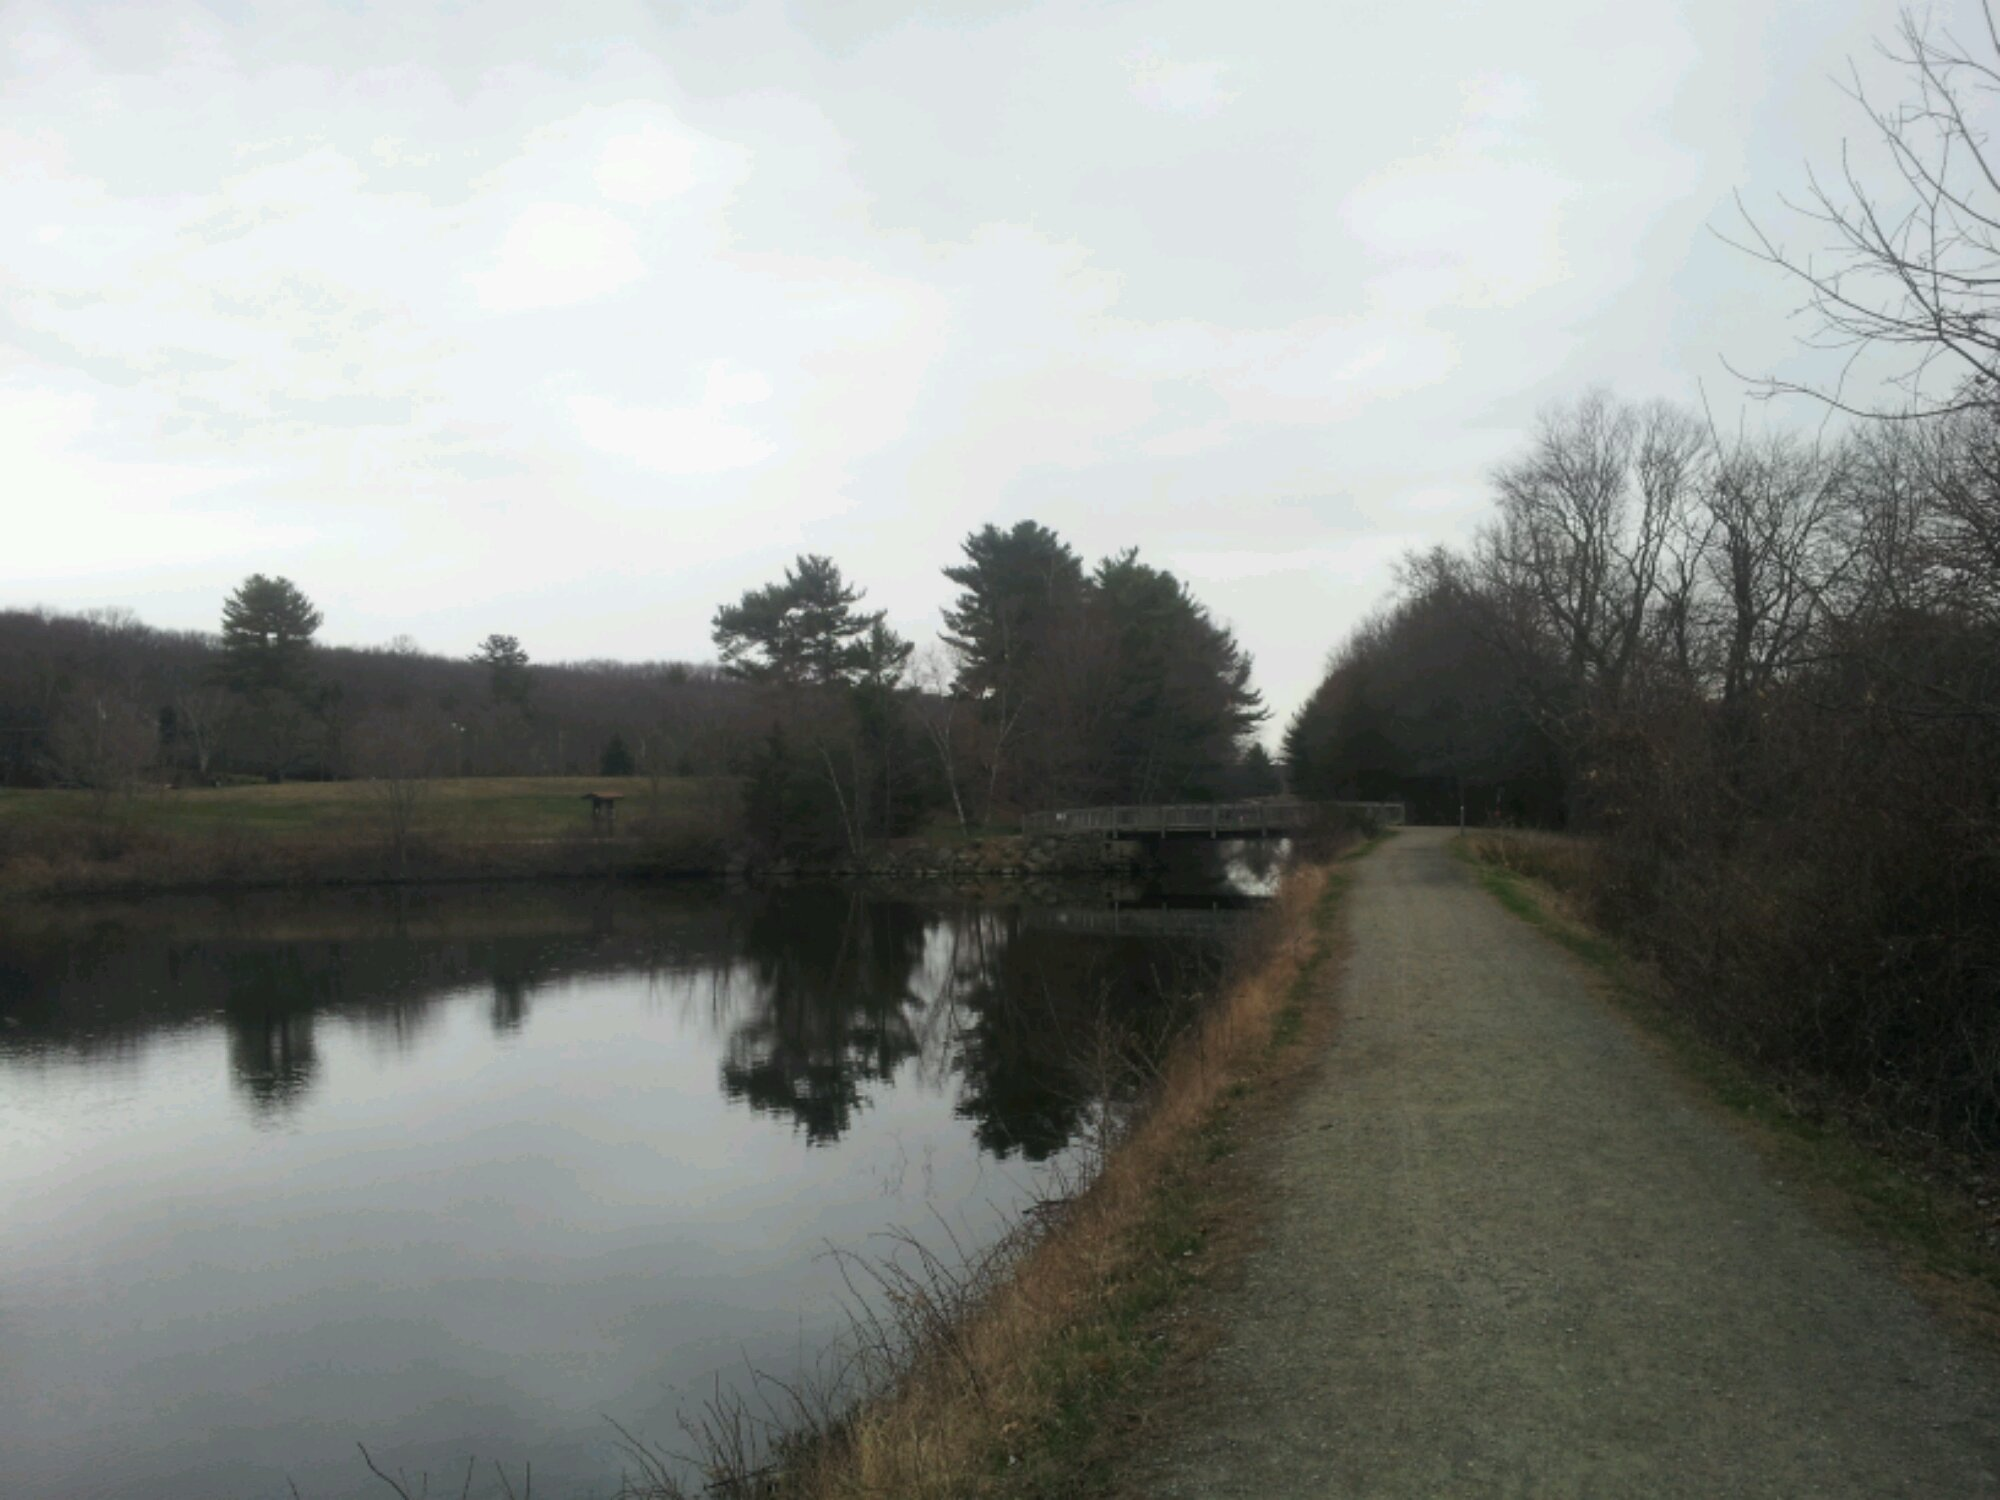 Blackstone Canal Towpath Walk – Uxbridge, MA